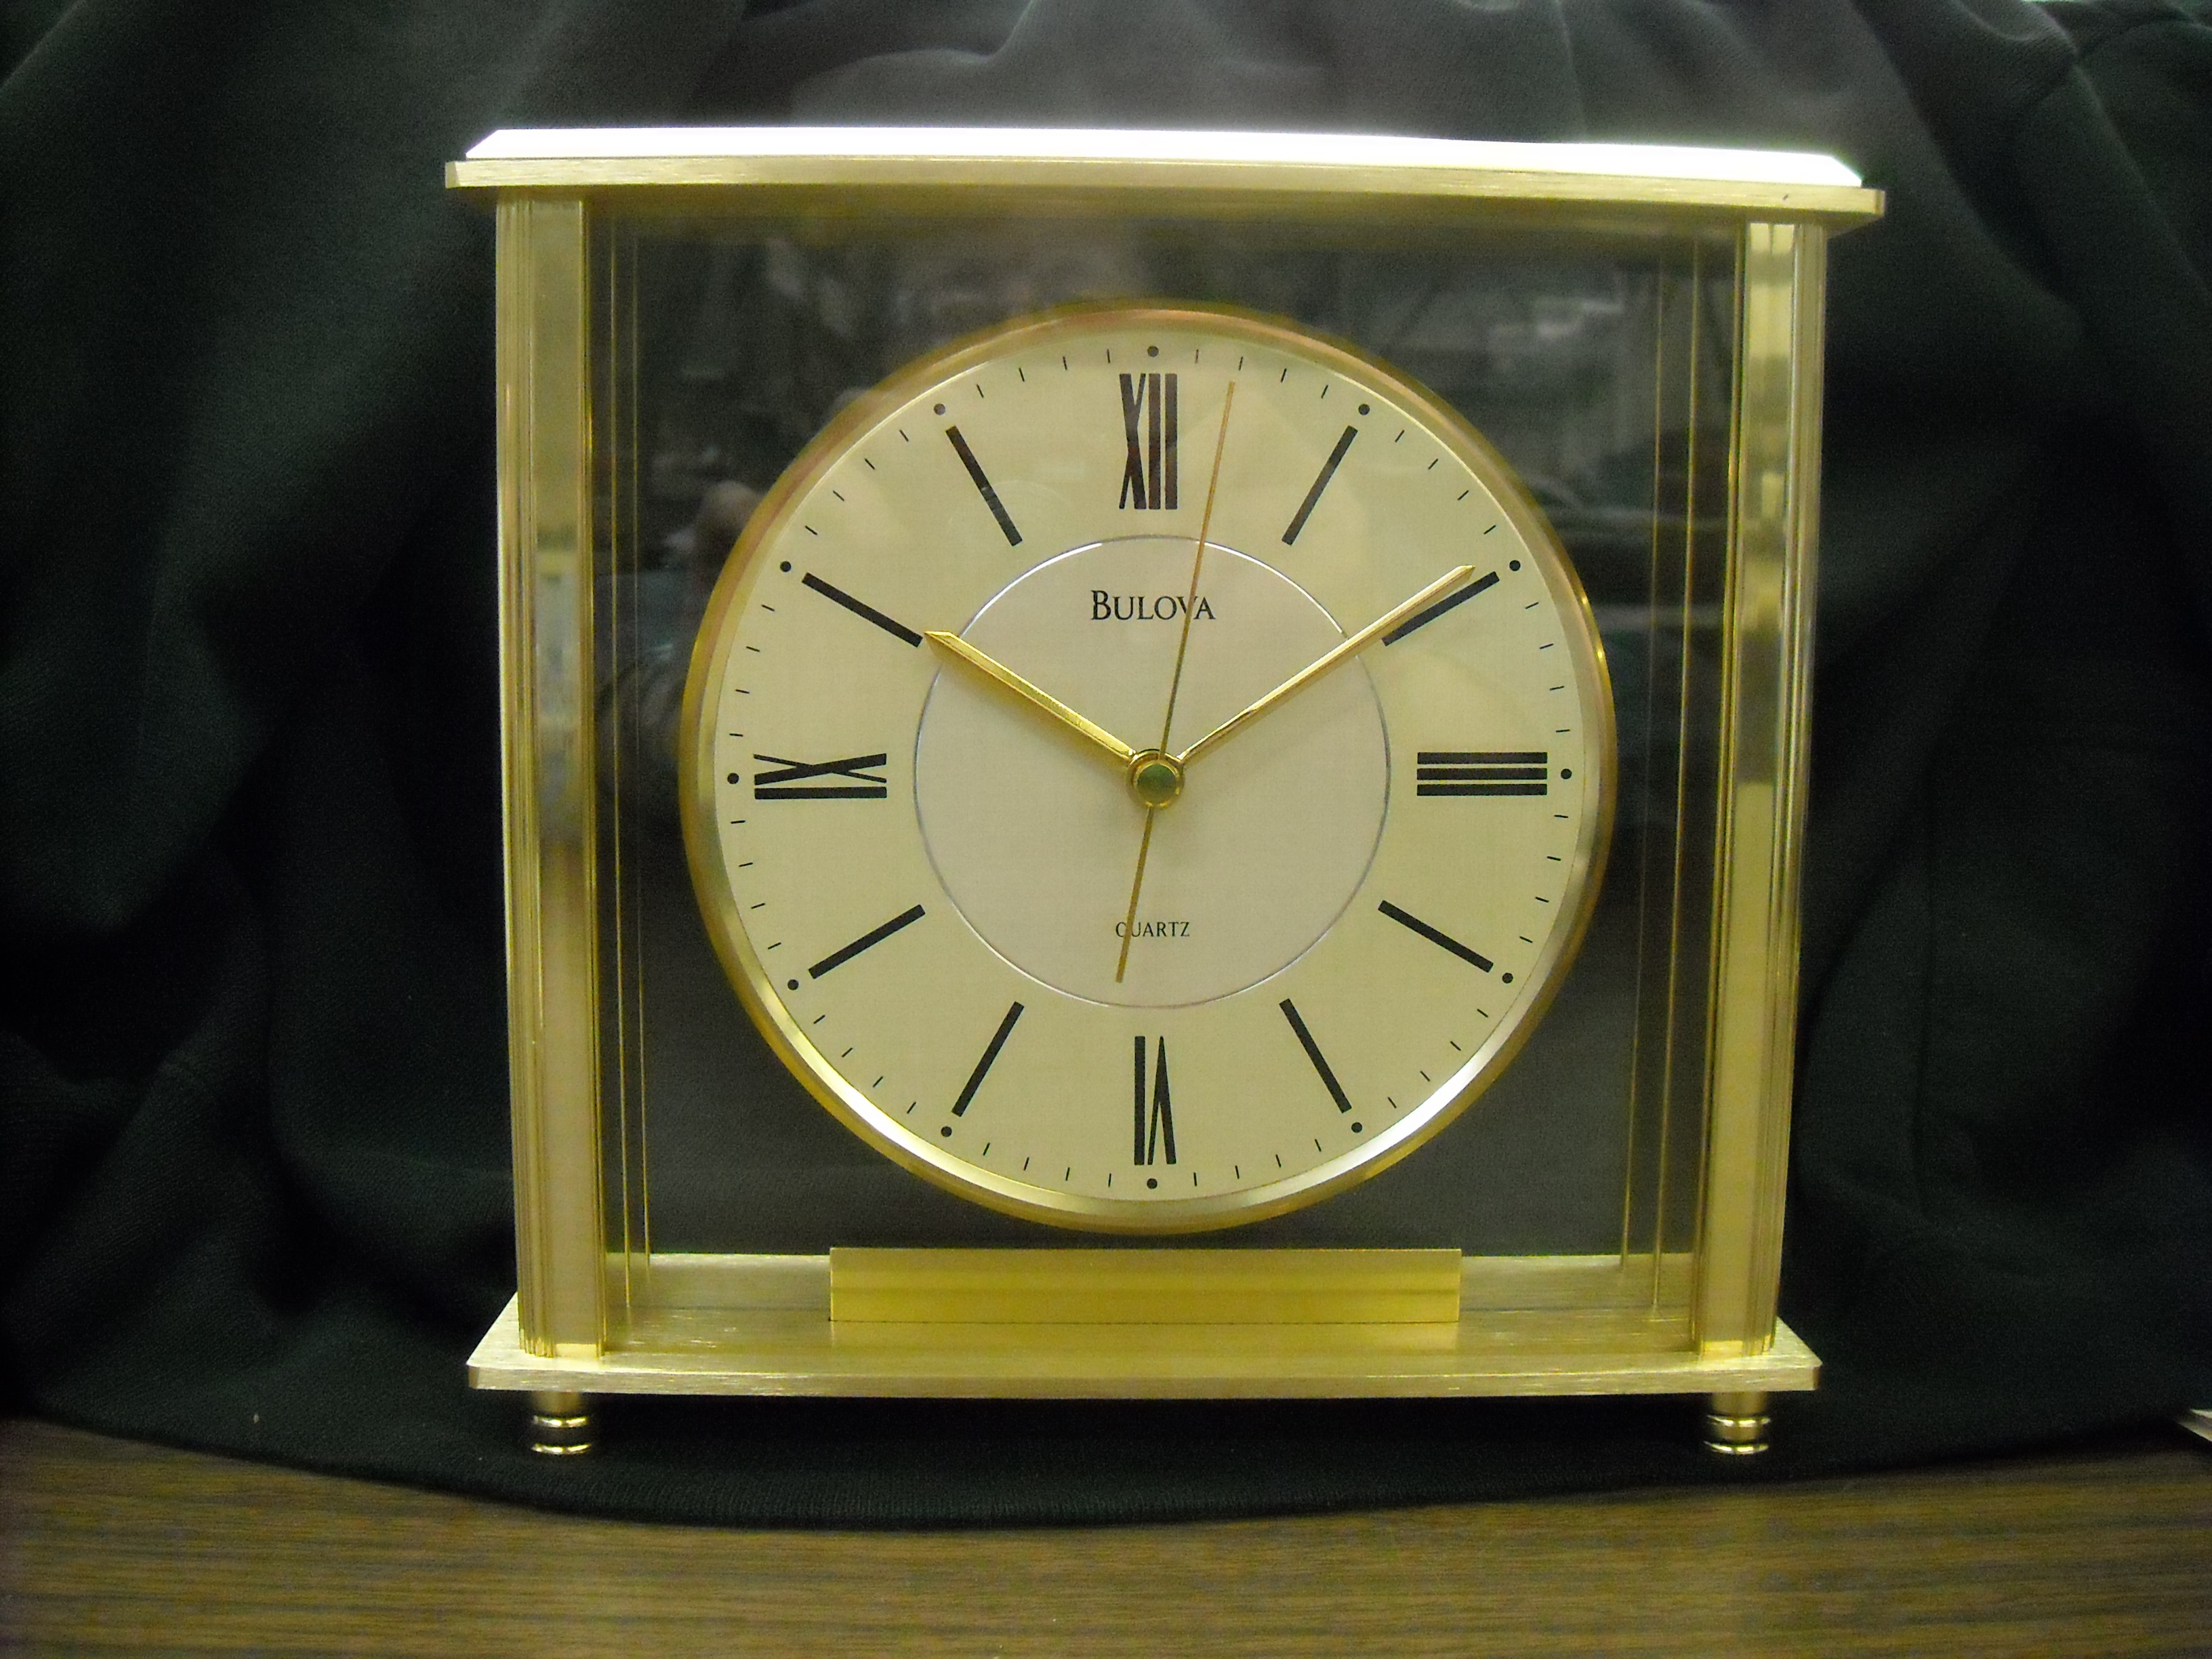 Decorative Mantel Clocks | Bulova Mantel Clock | Bulova Antique Clock